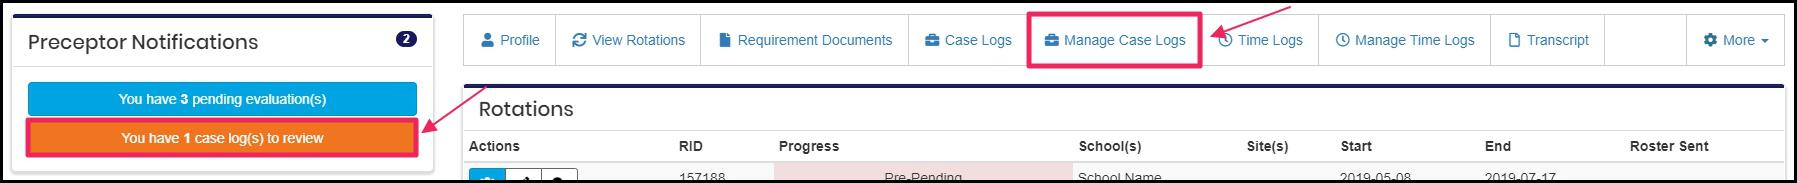 Image pointing to You have 1 case log(s) to review notification in Preceptor Notifications section and Manage Case Logs tab on features bar on preceptor homepage